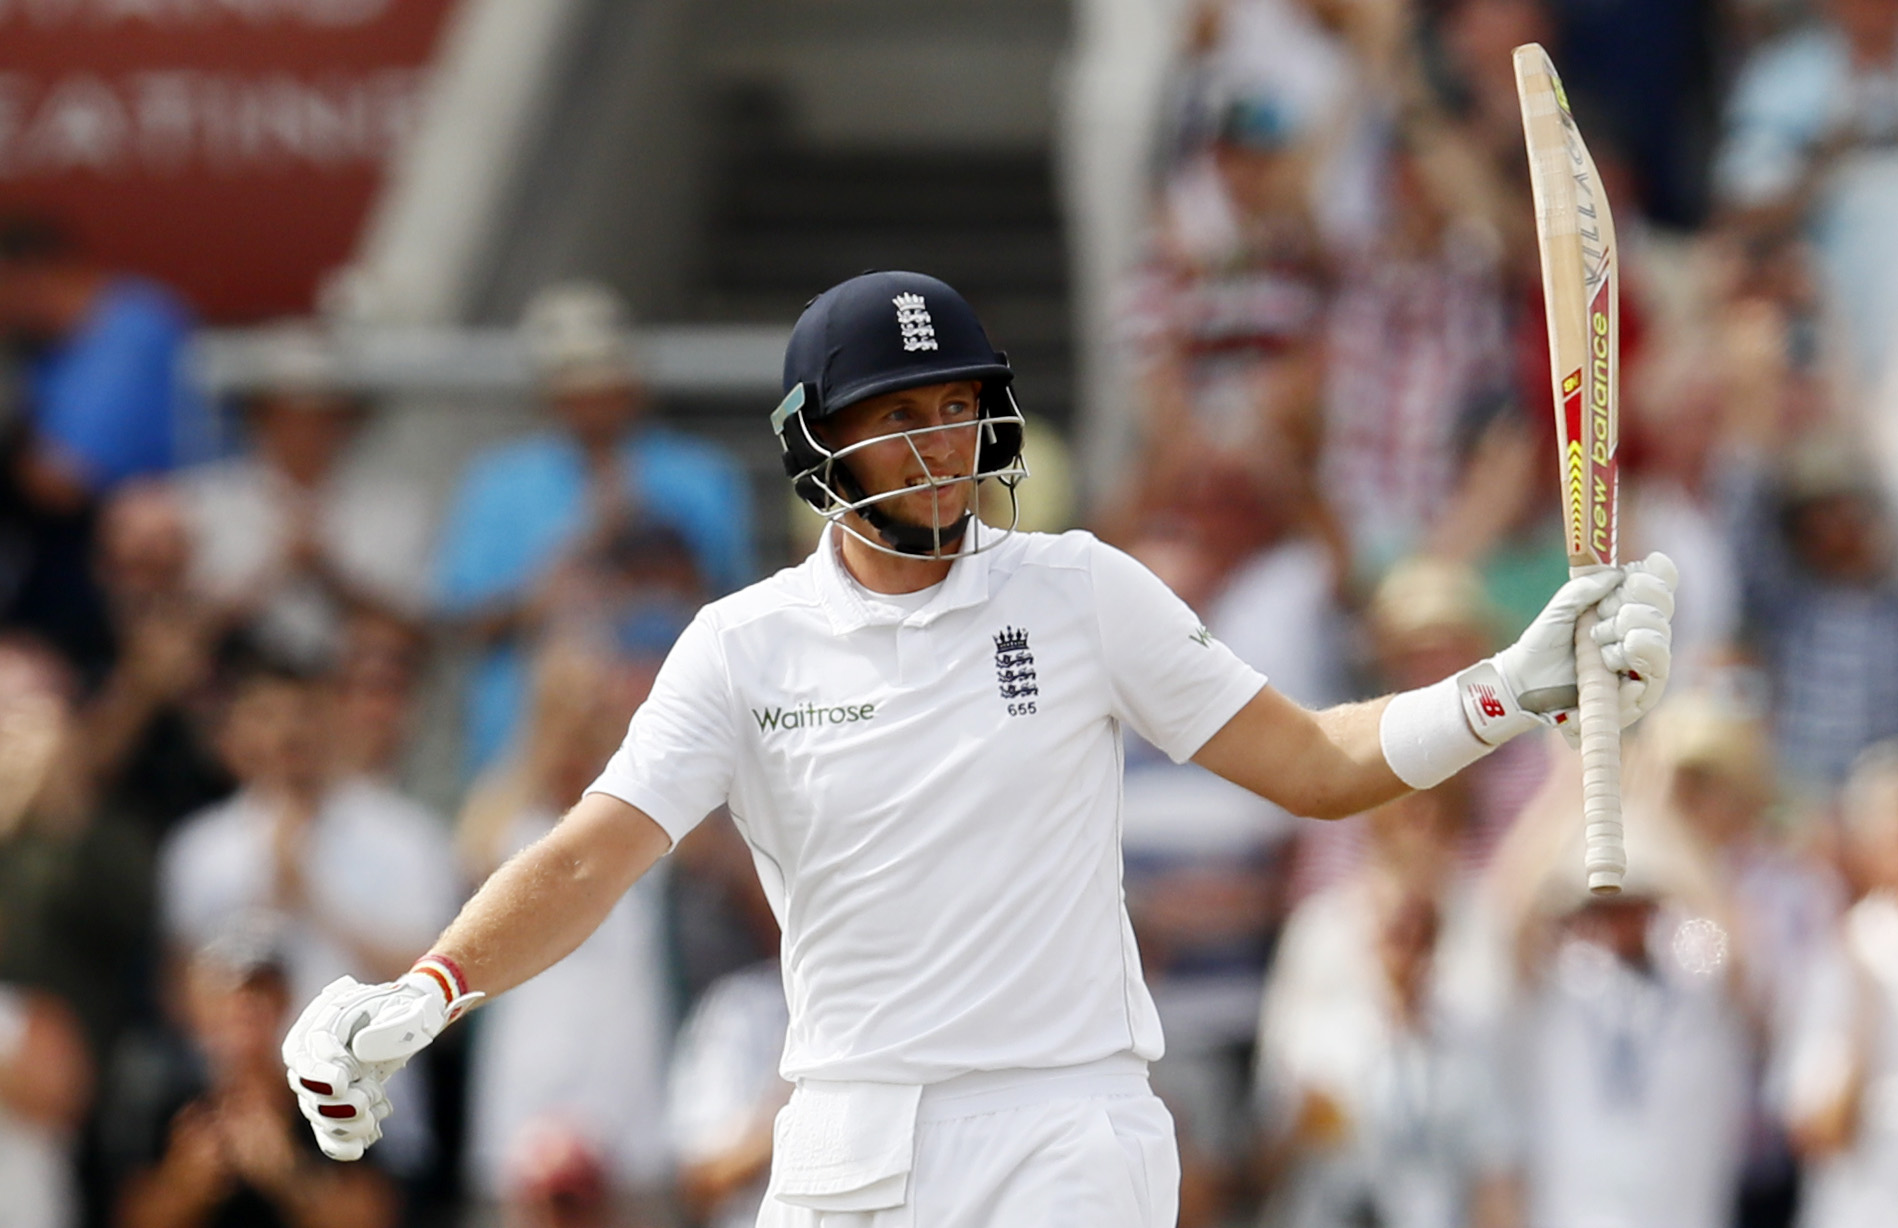 Cricket: Root masterclass puts England in command